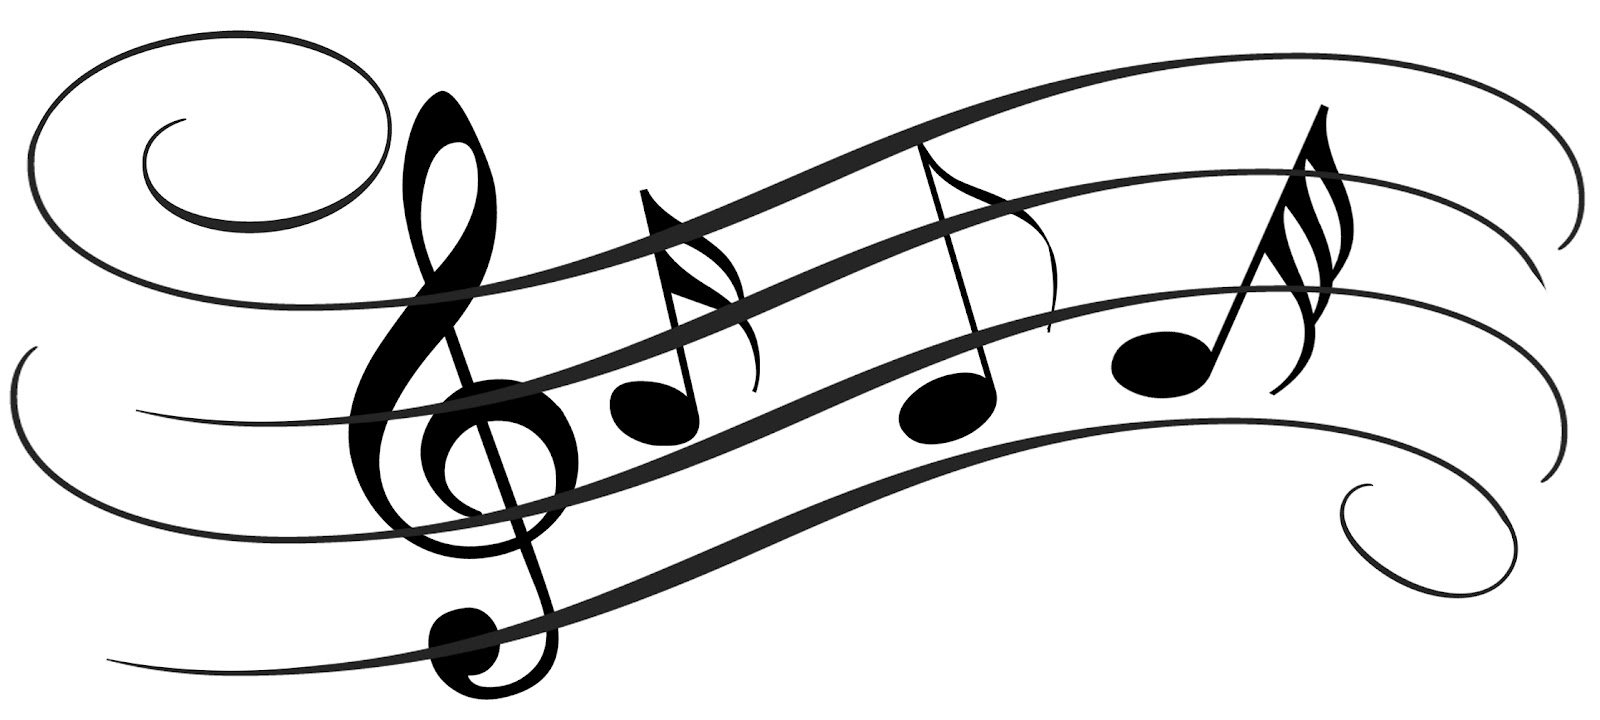 1600x720 Free Music Note Clip Art